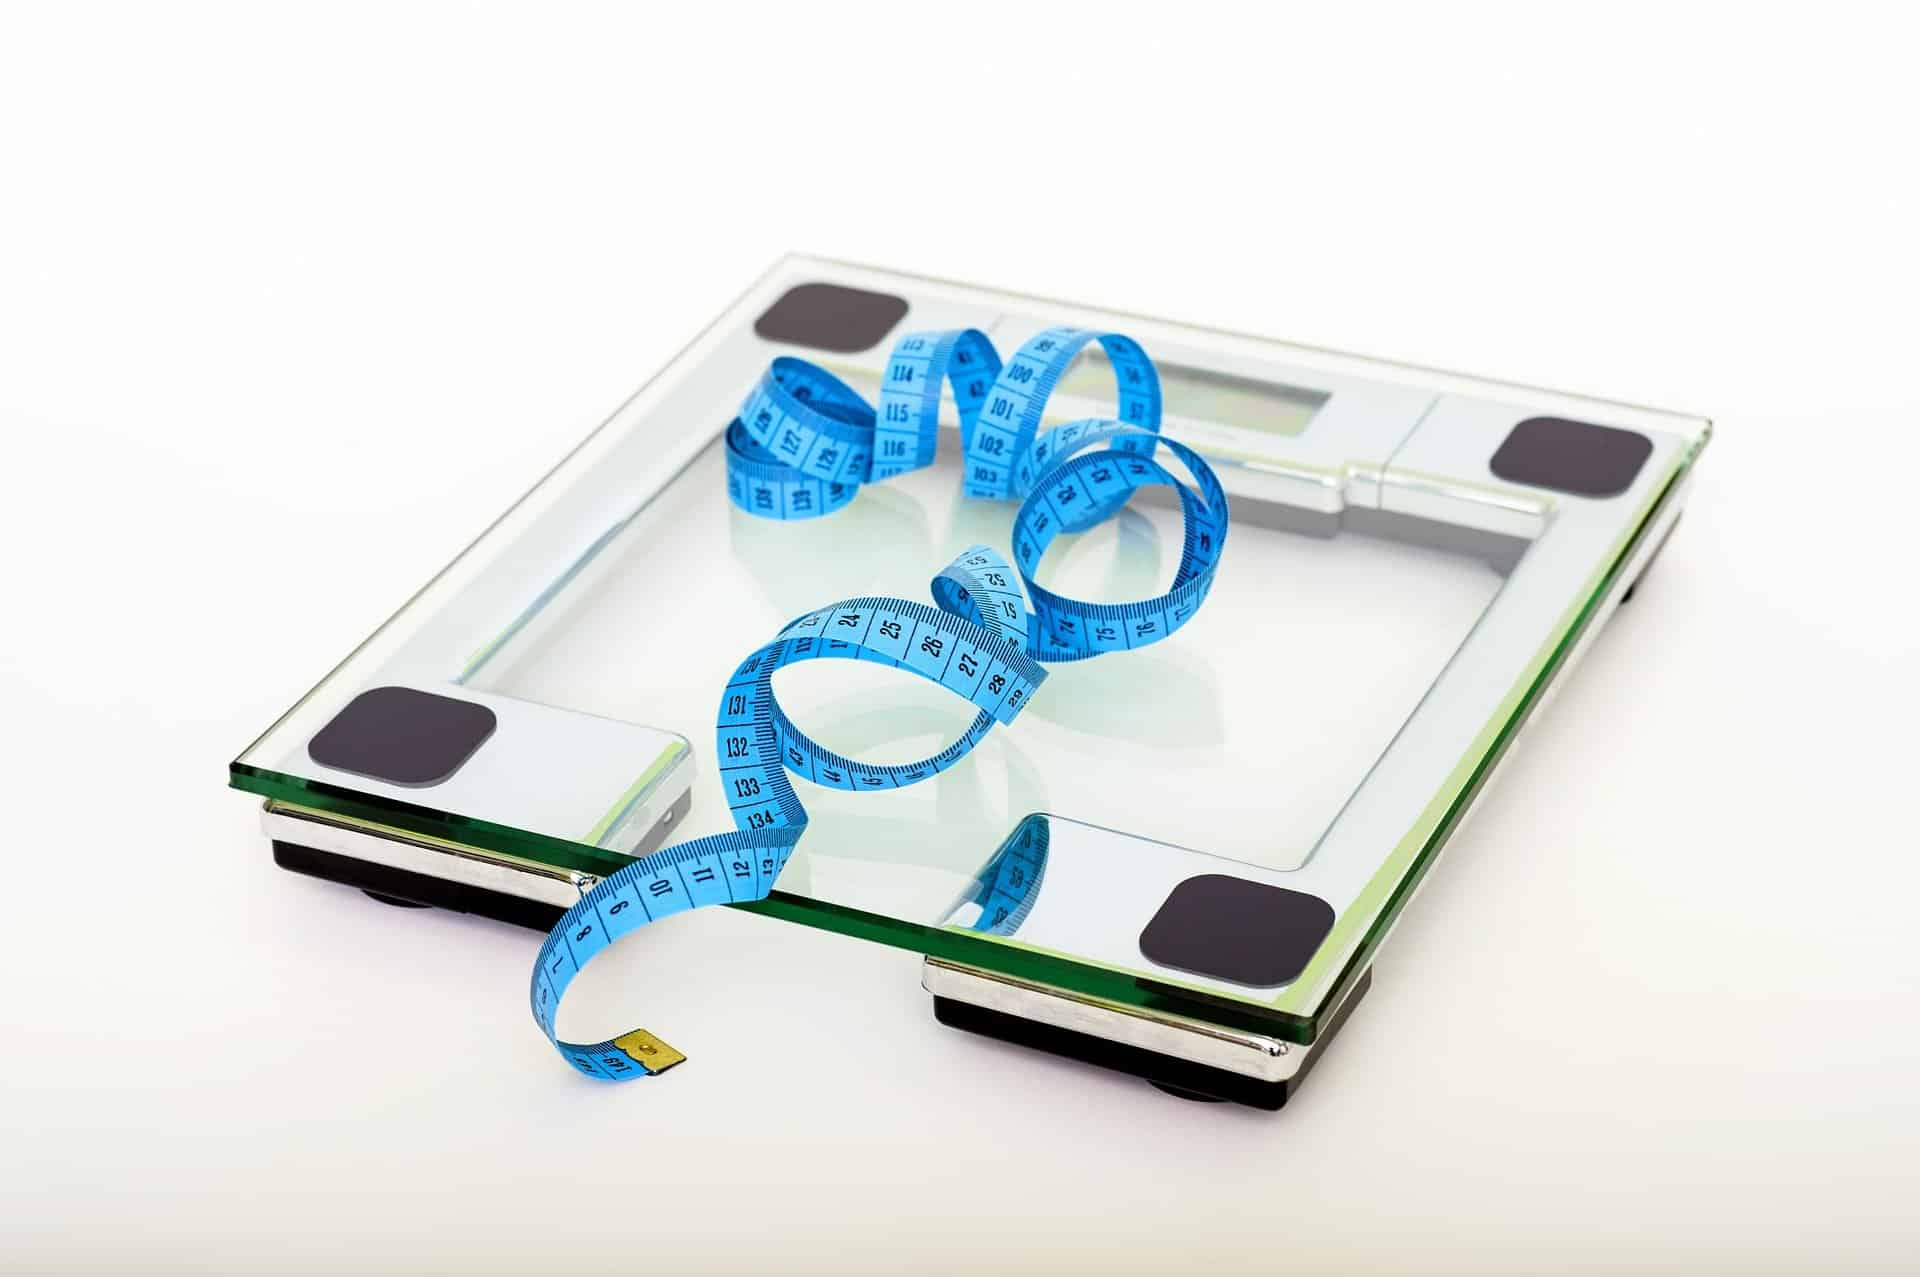 digital scales and measure for weight management